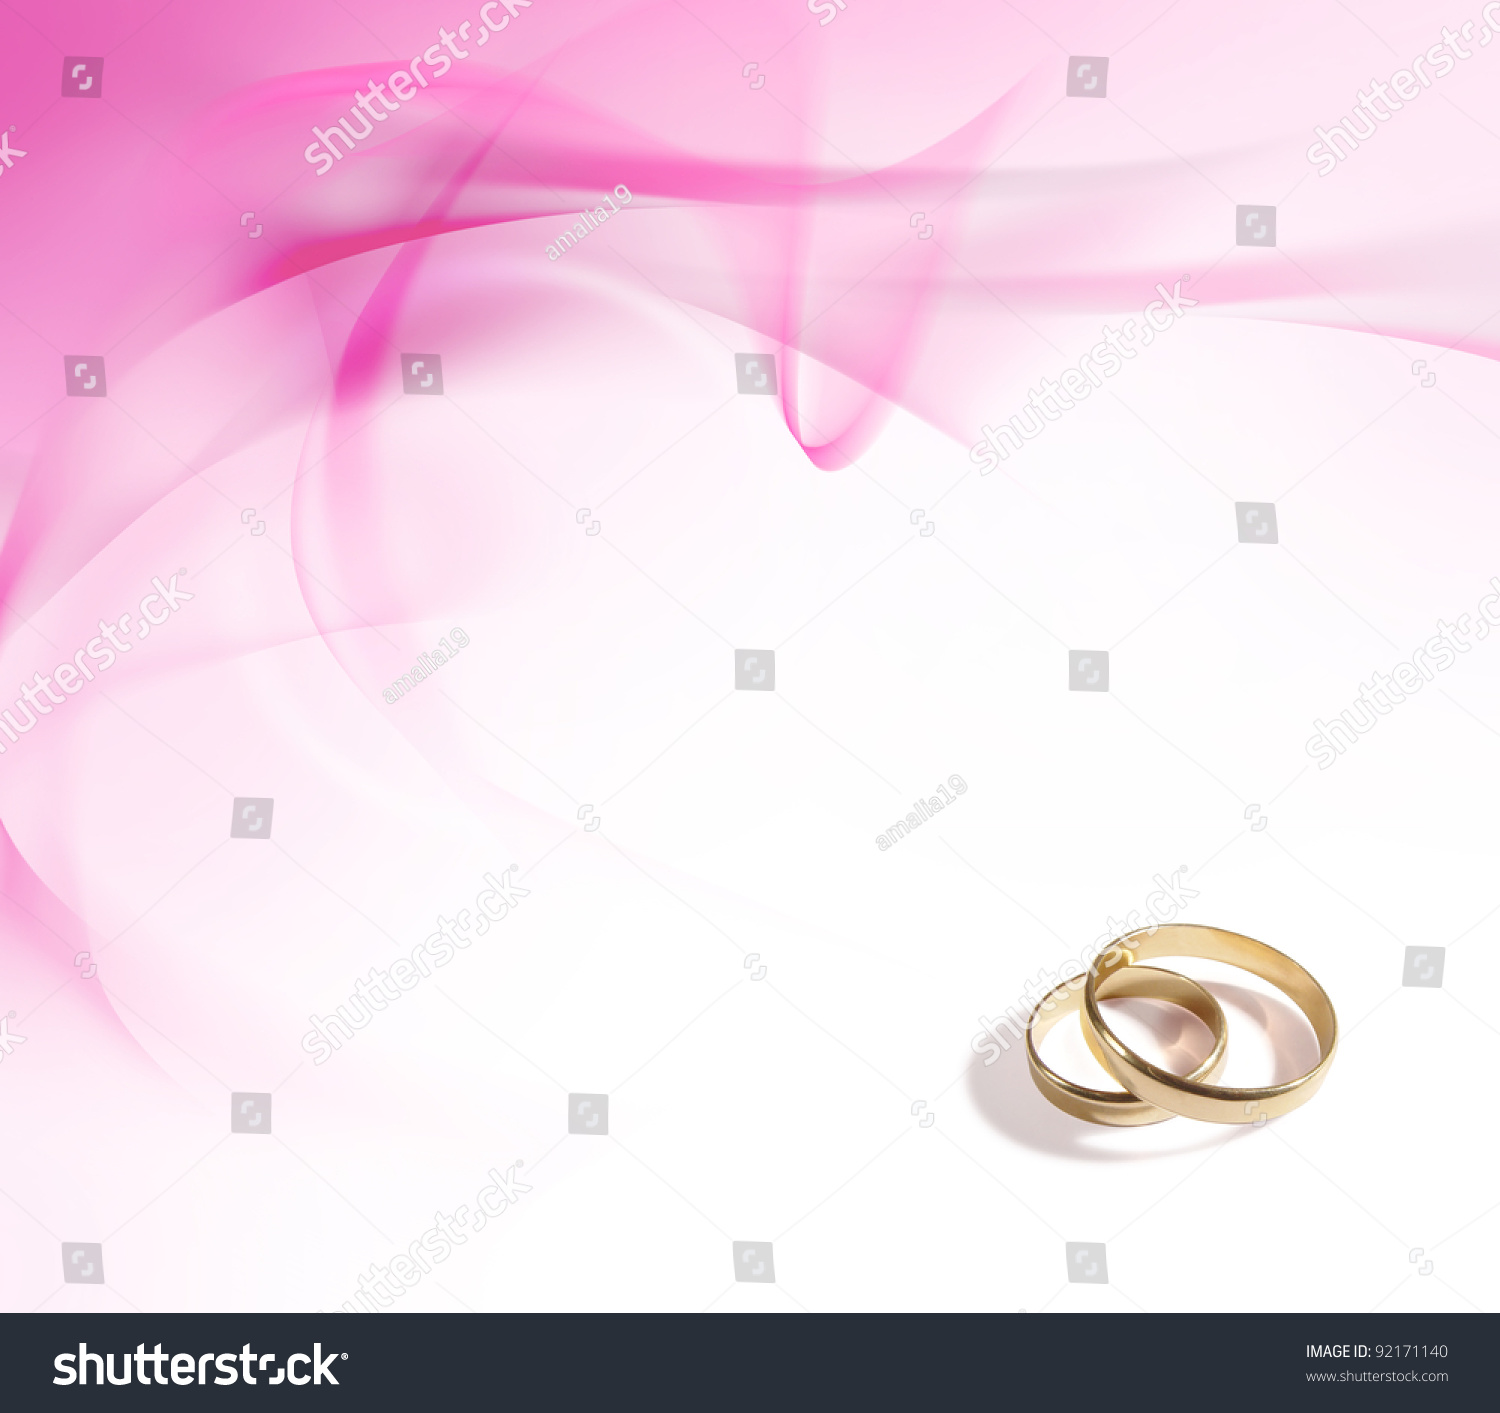 stock photo wedding rings and delicate pink background pink wedding rings Wedding rings and delicate pink background